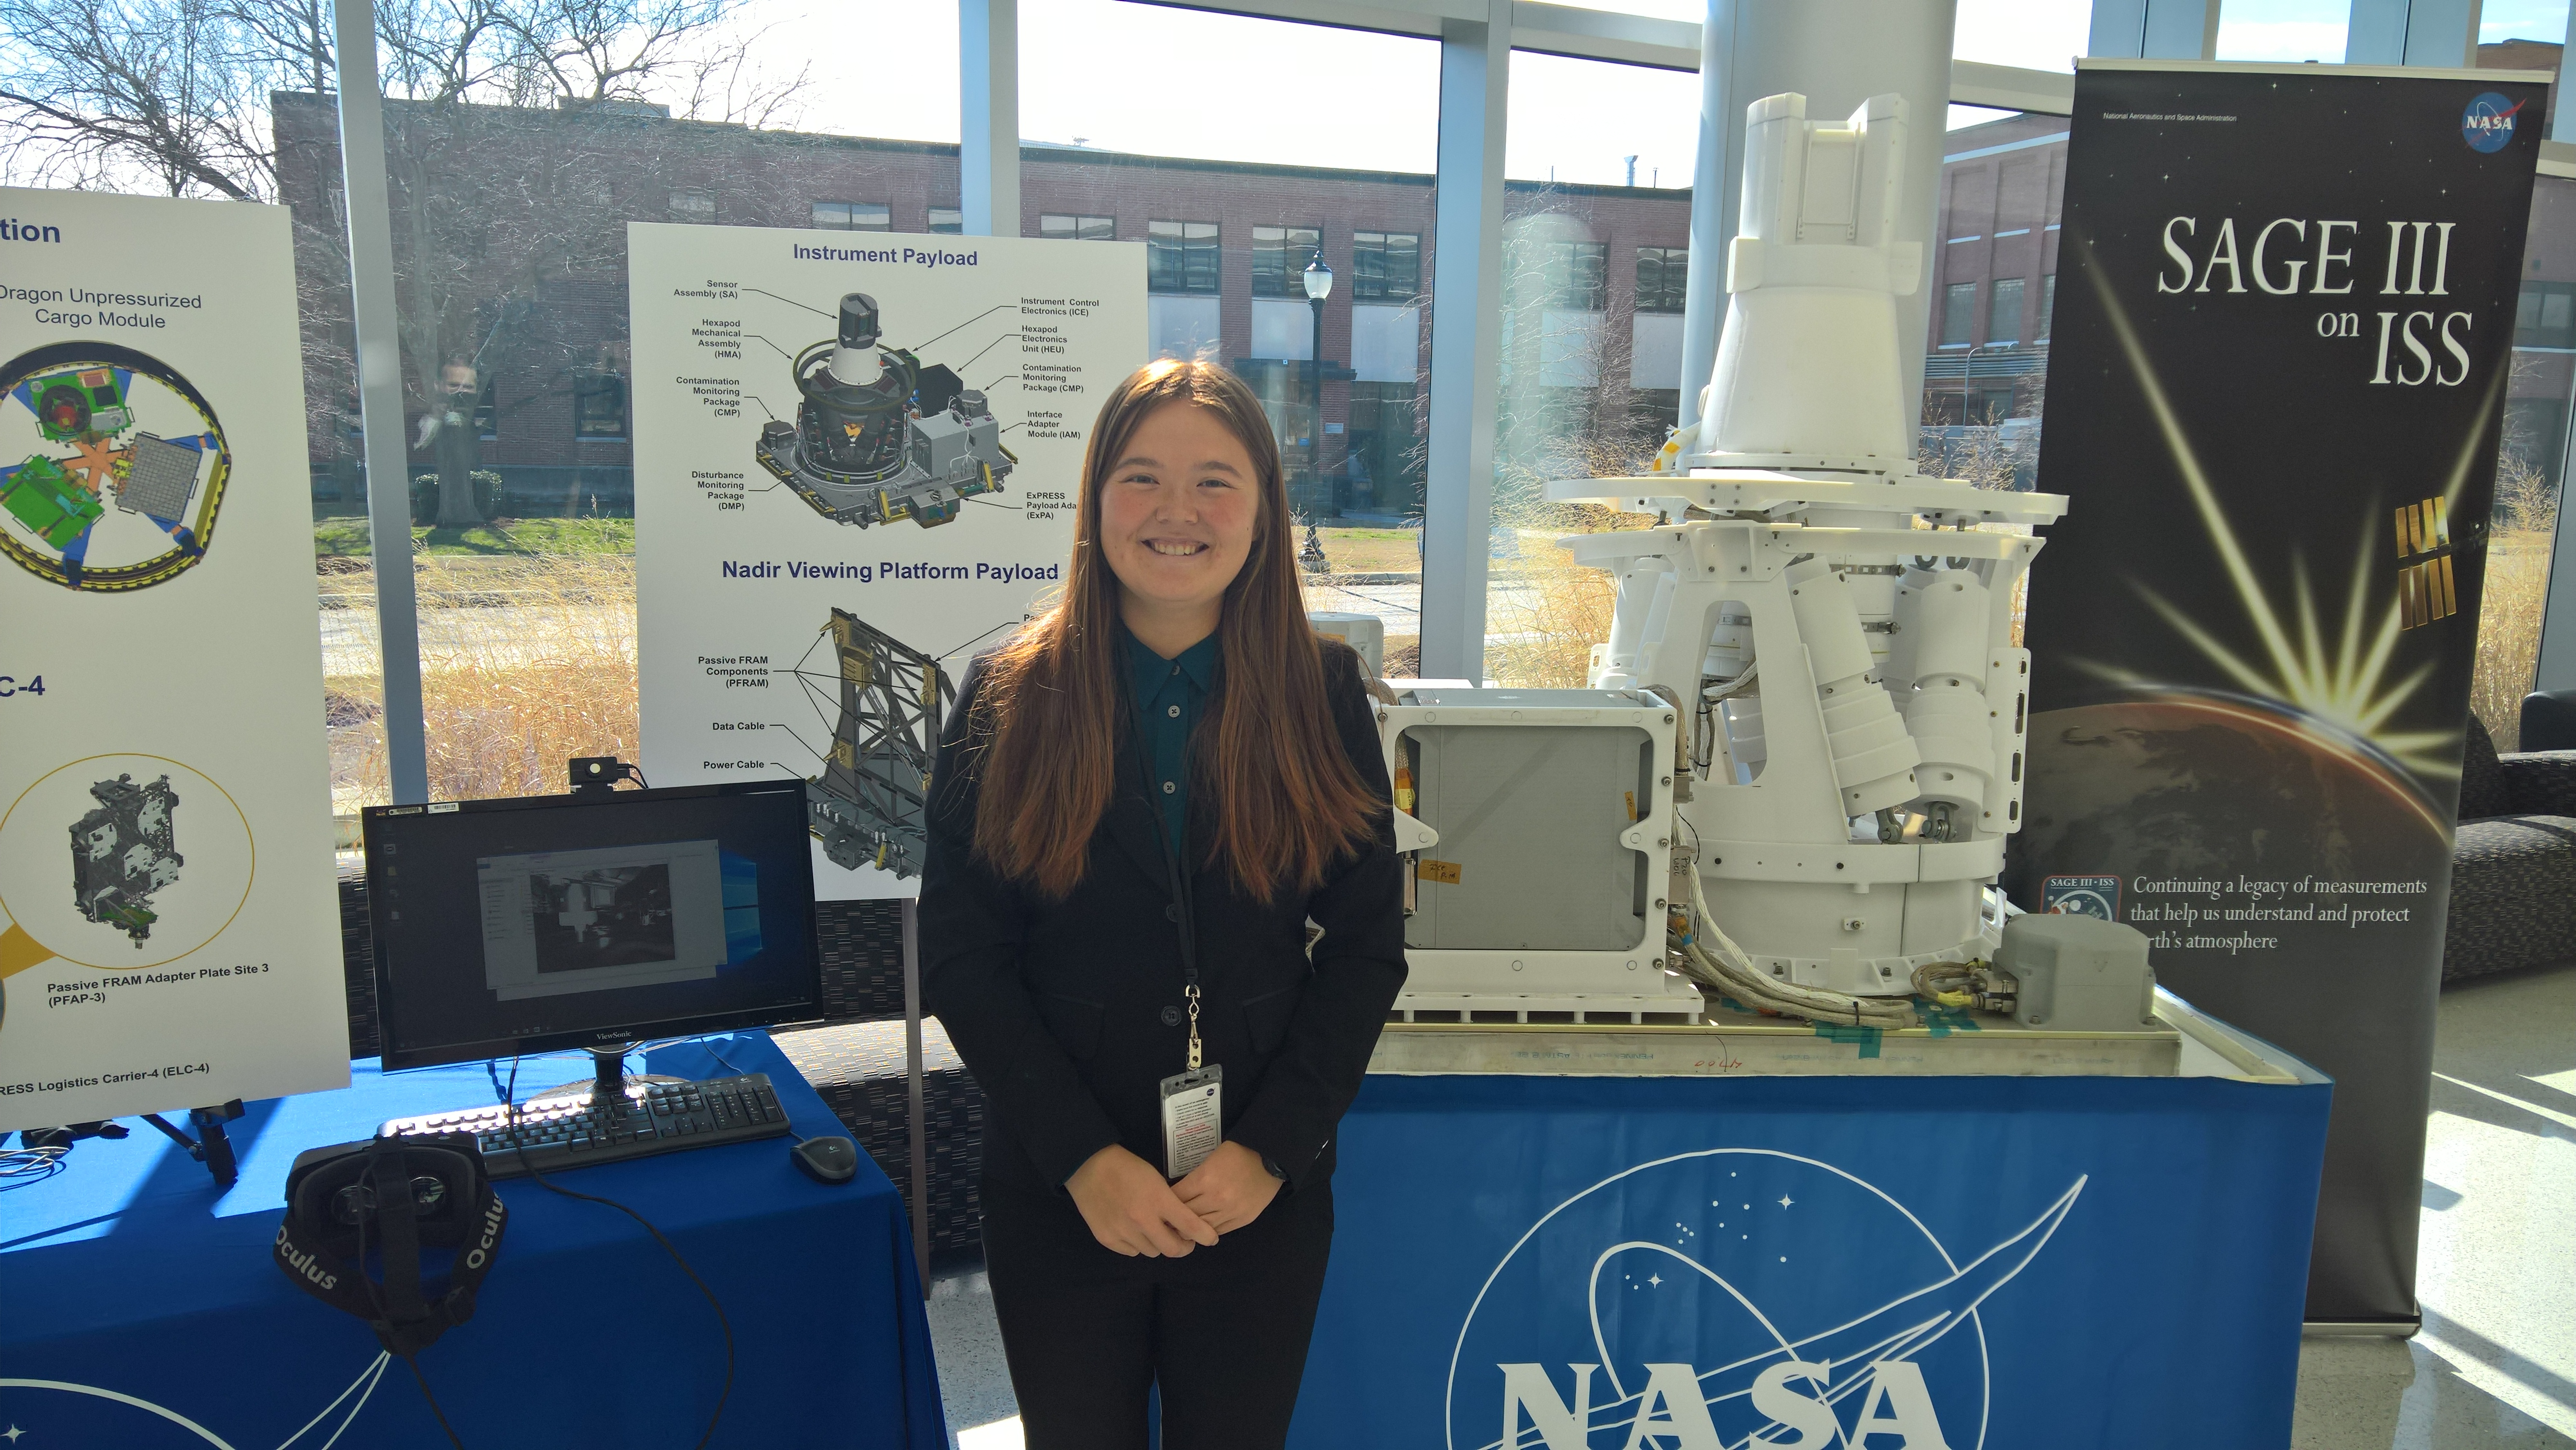 6144f0ebb81 Christine Odenwald poses with a SAGE III on ISS display at NASA Langley.